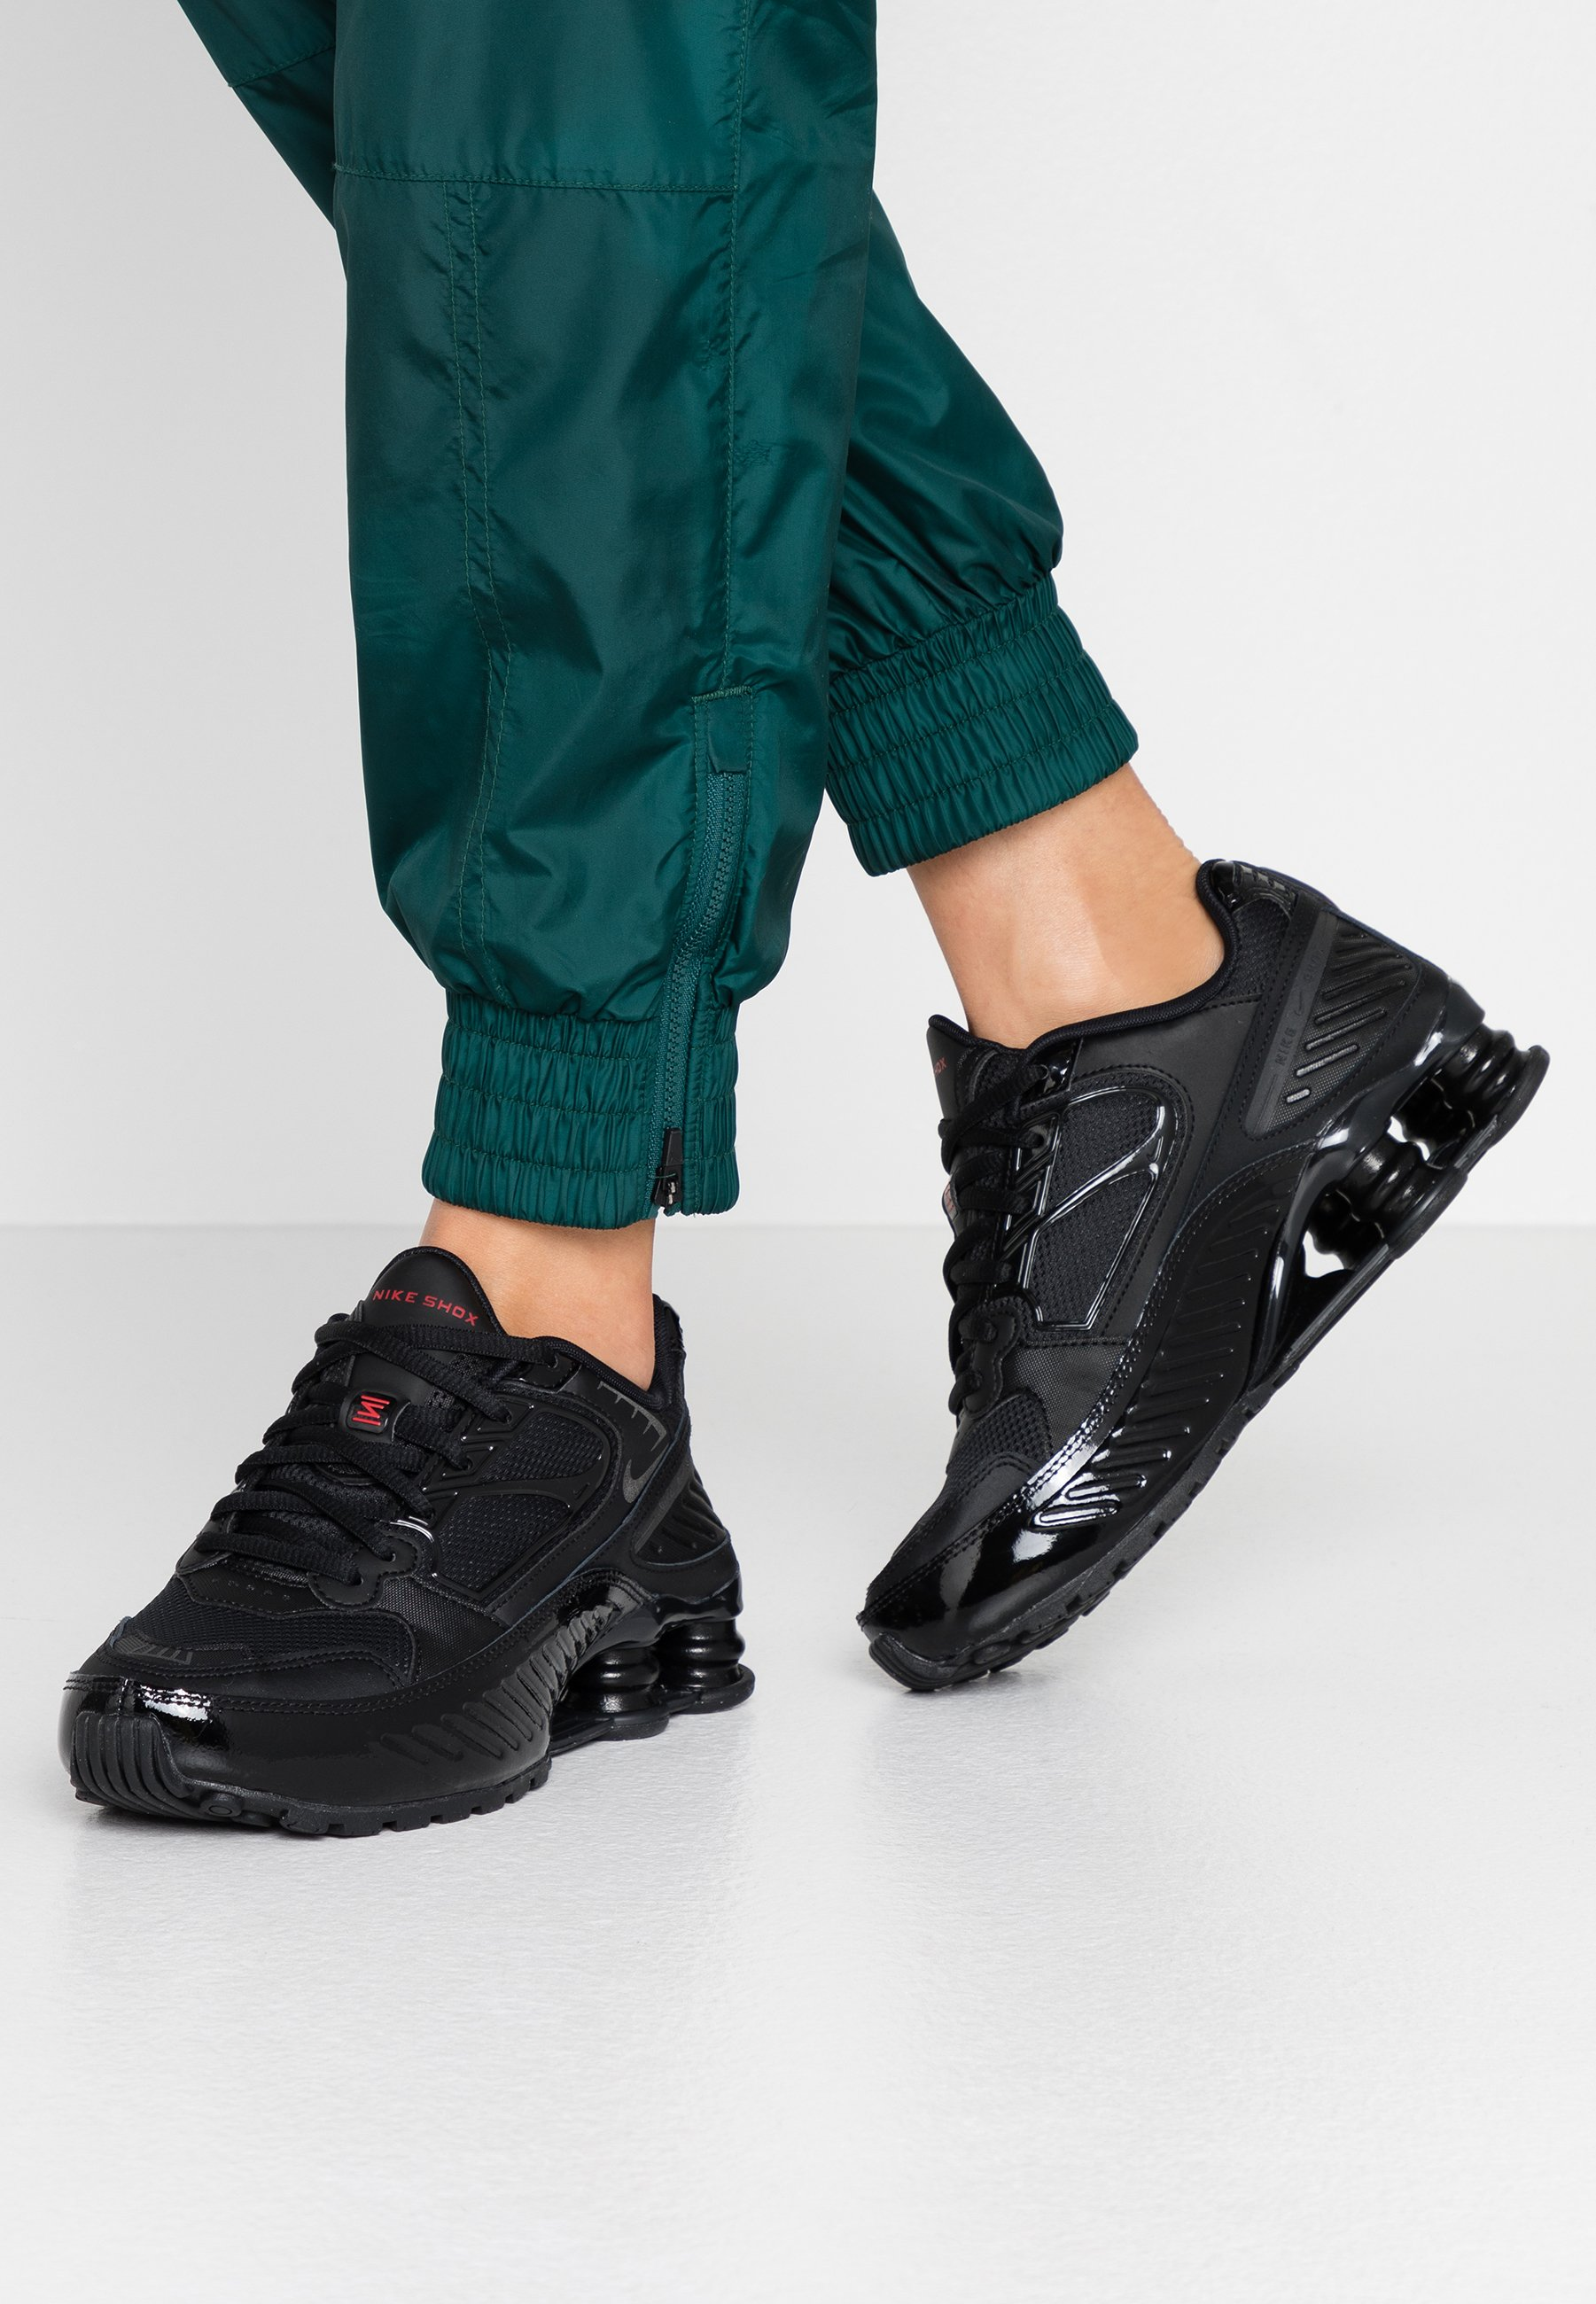 SHOX ENIGMA 9000 Sneakers basse blackgym red